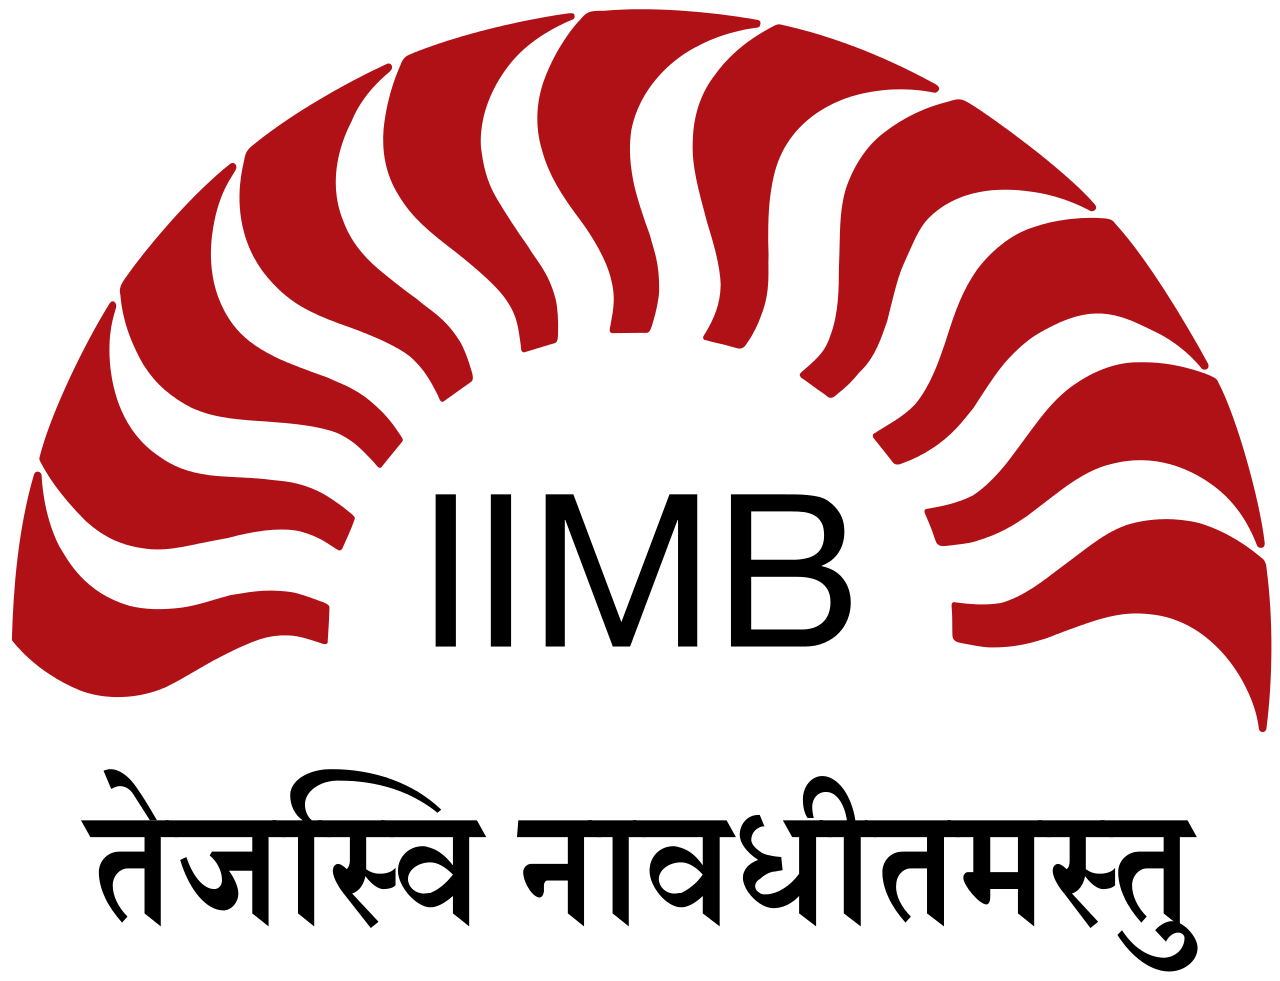 IIM Bangalore, IIM Bangalore fee increased, IIM Bangalore increase fee, IIM Bangalore increase fee by 10%, IIM Bangalore increases fee of PGP course, PGP course fee increased in IIM-B